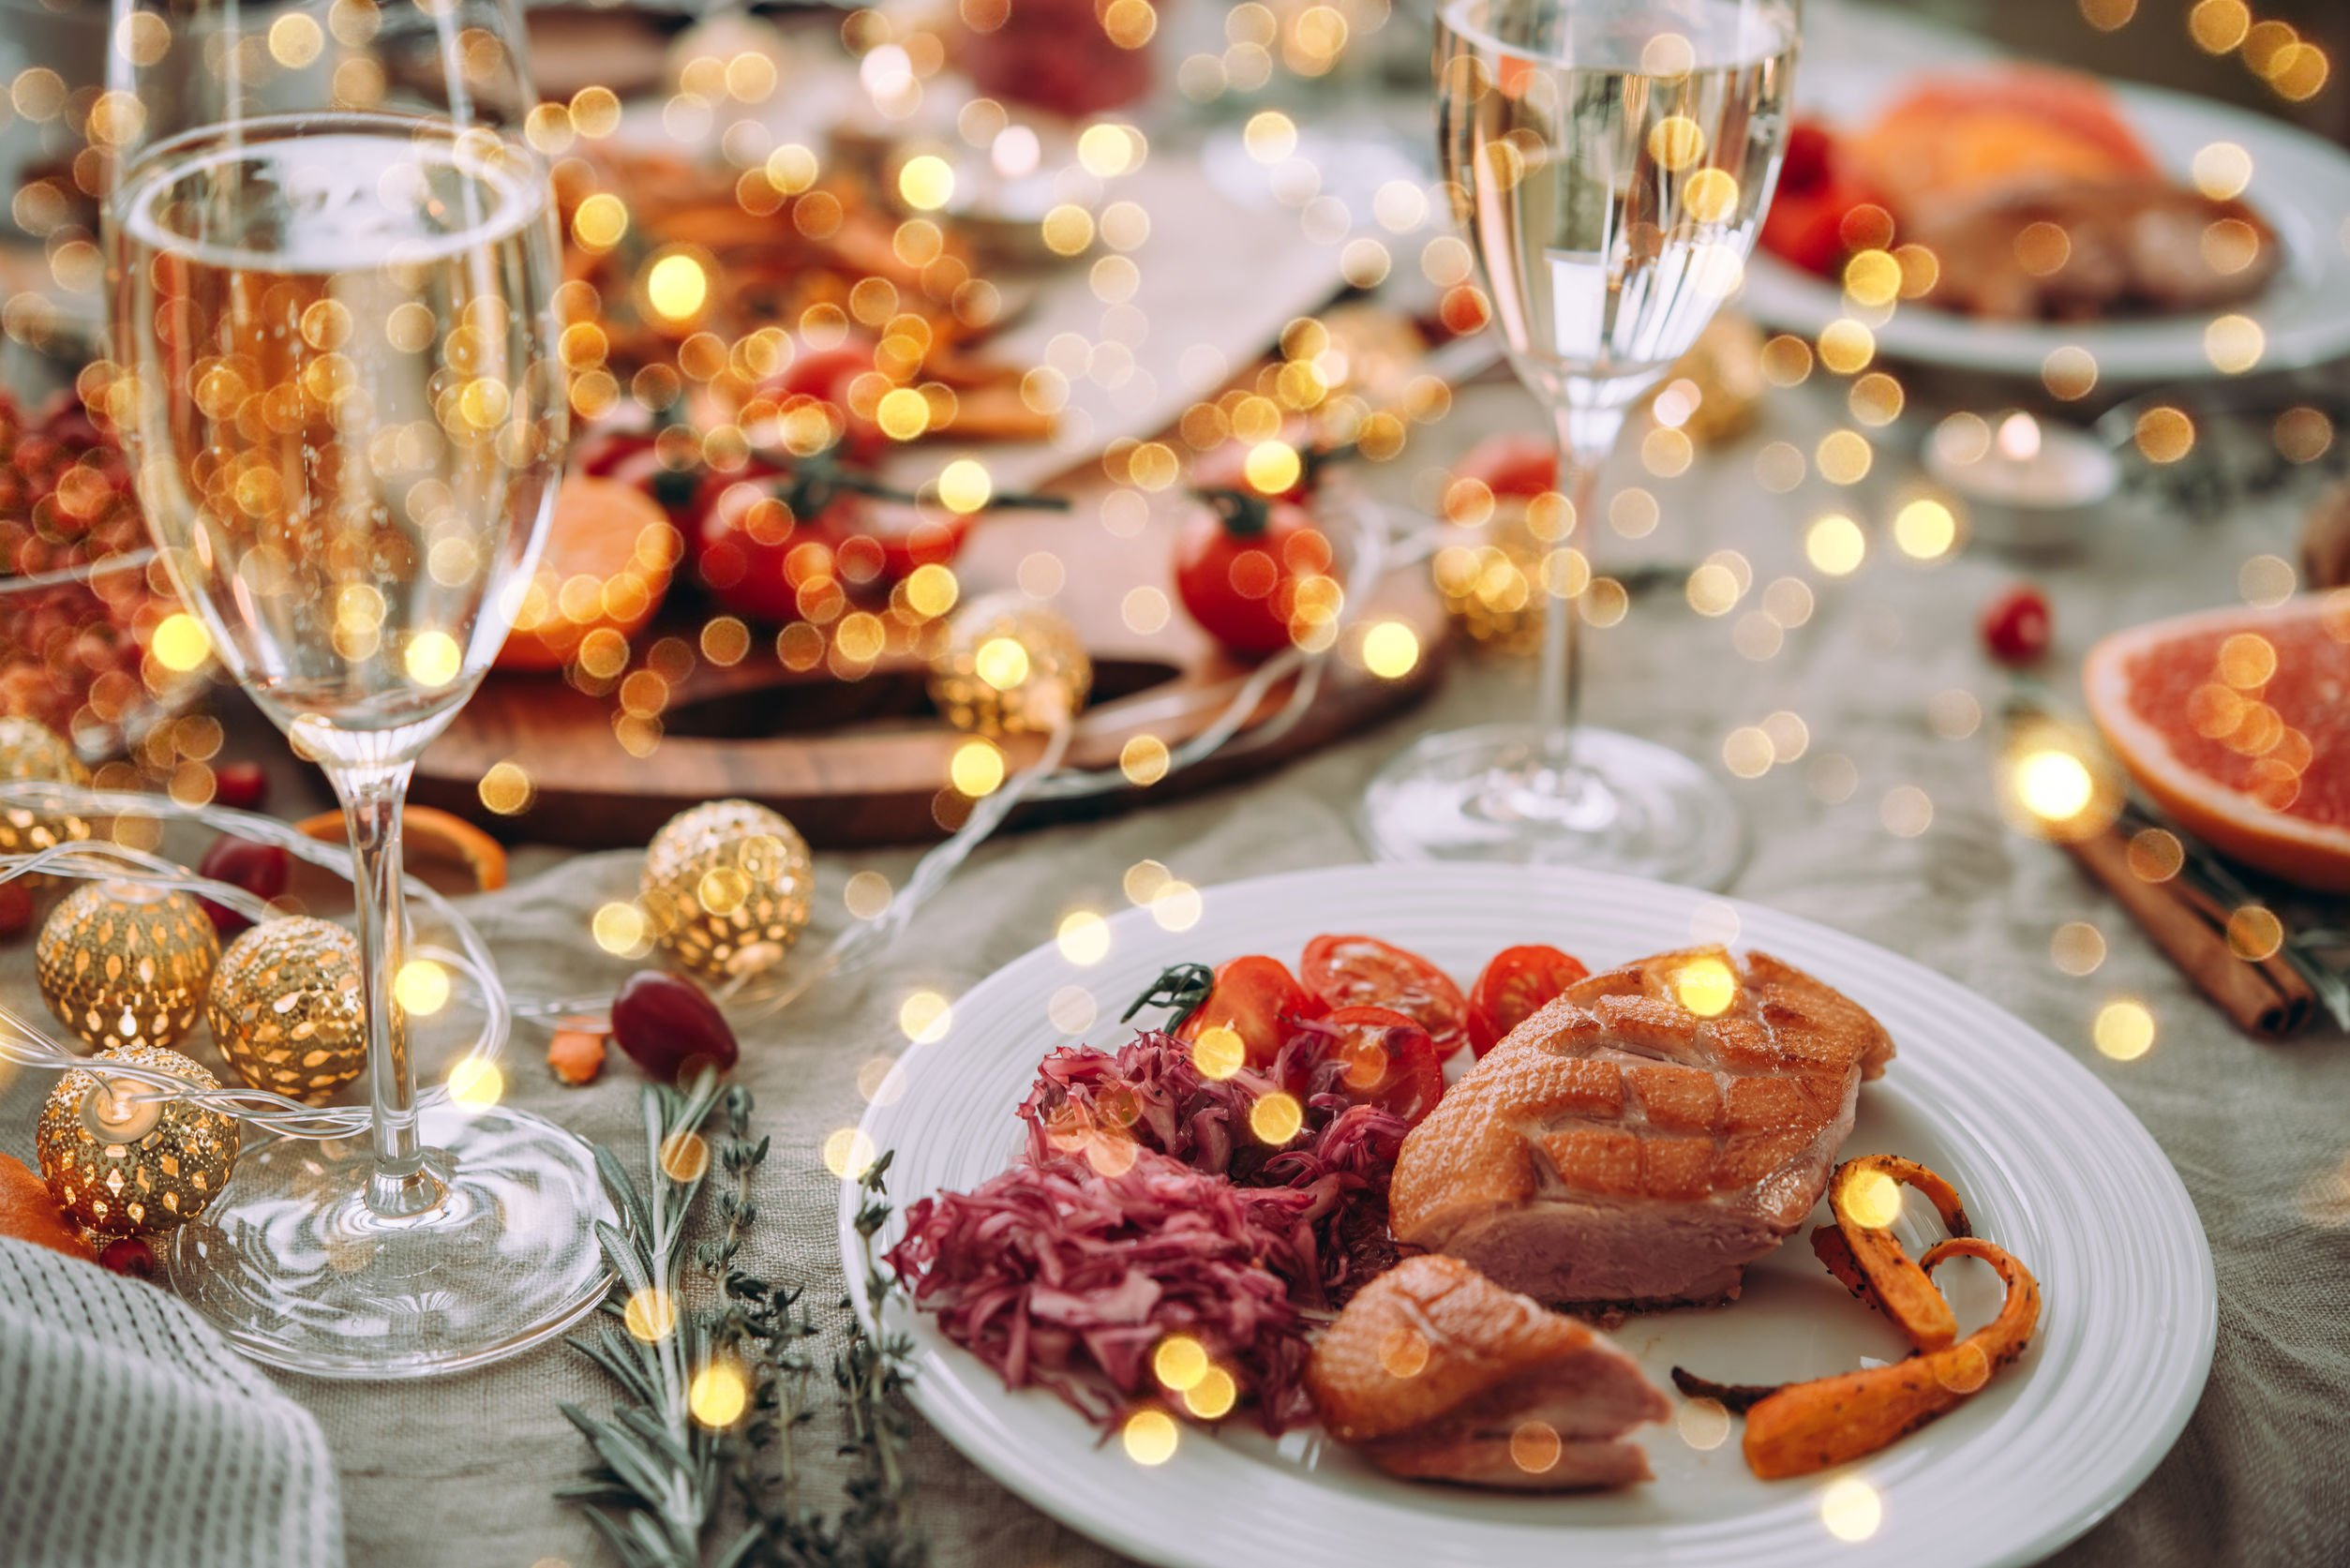 7 Benefits of Hiring a Personal Chef for Your Holiday Party